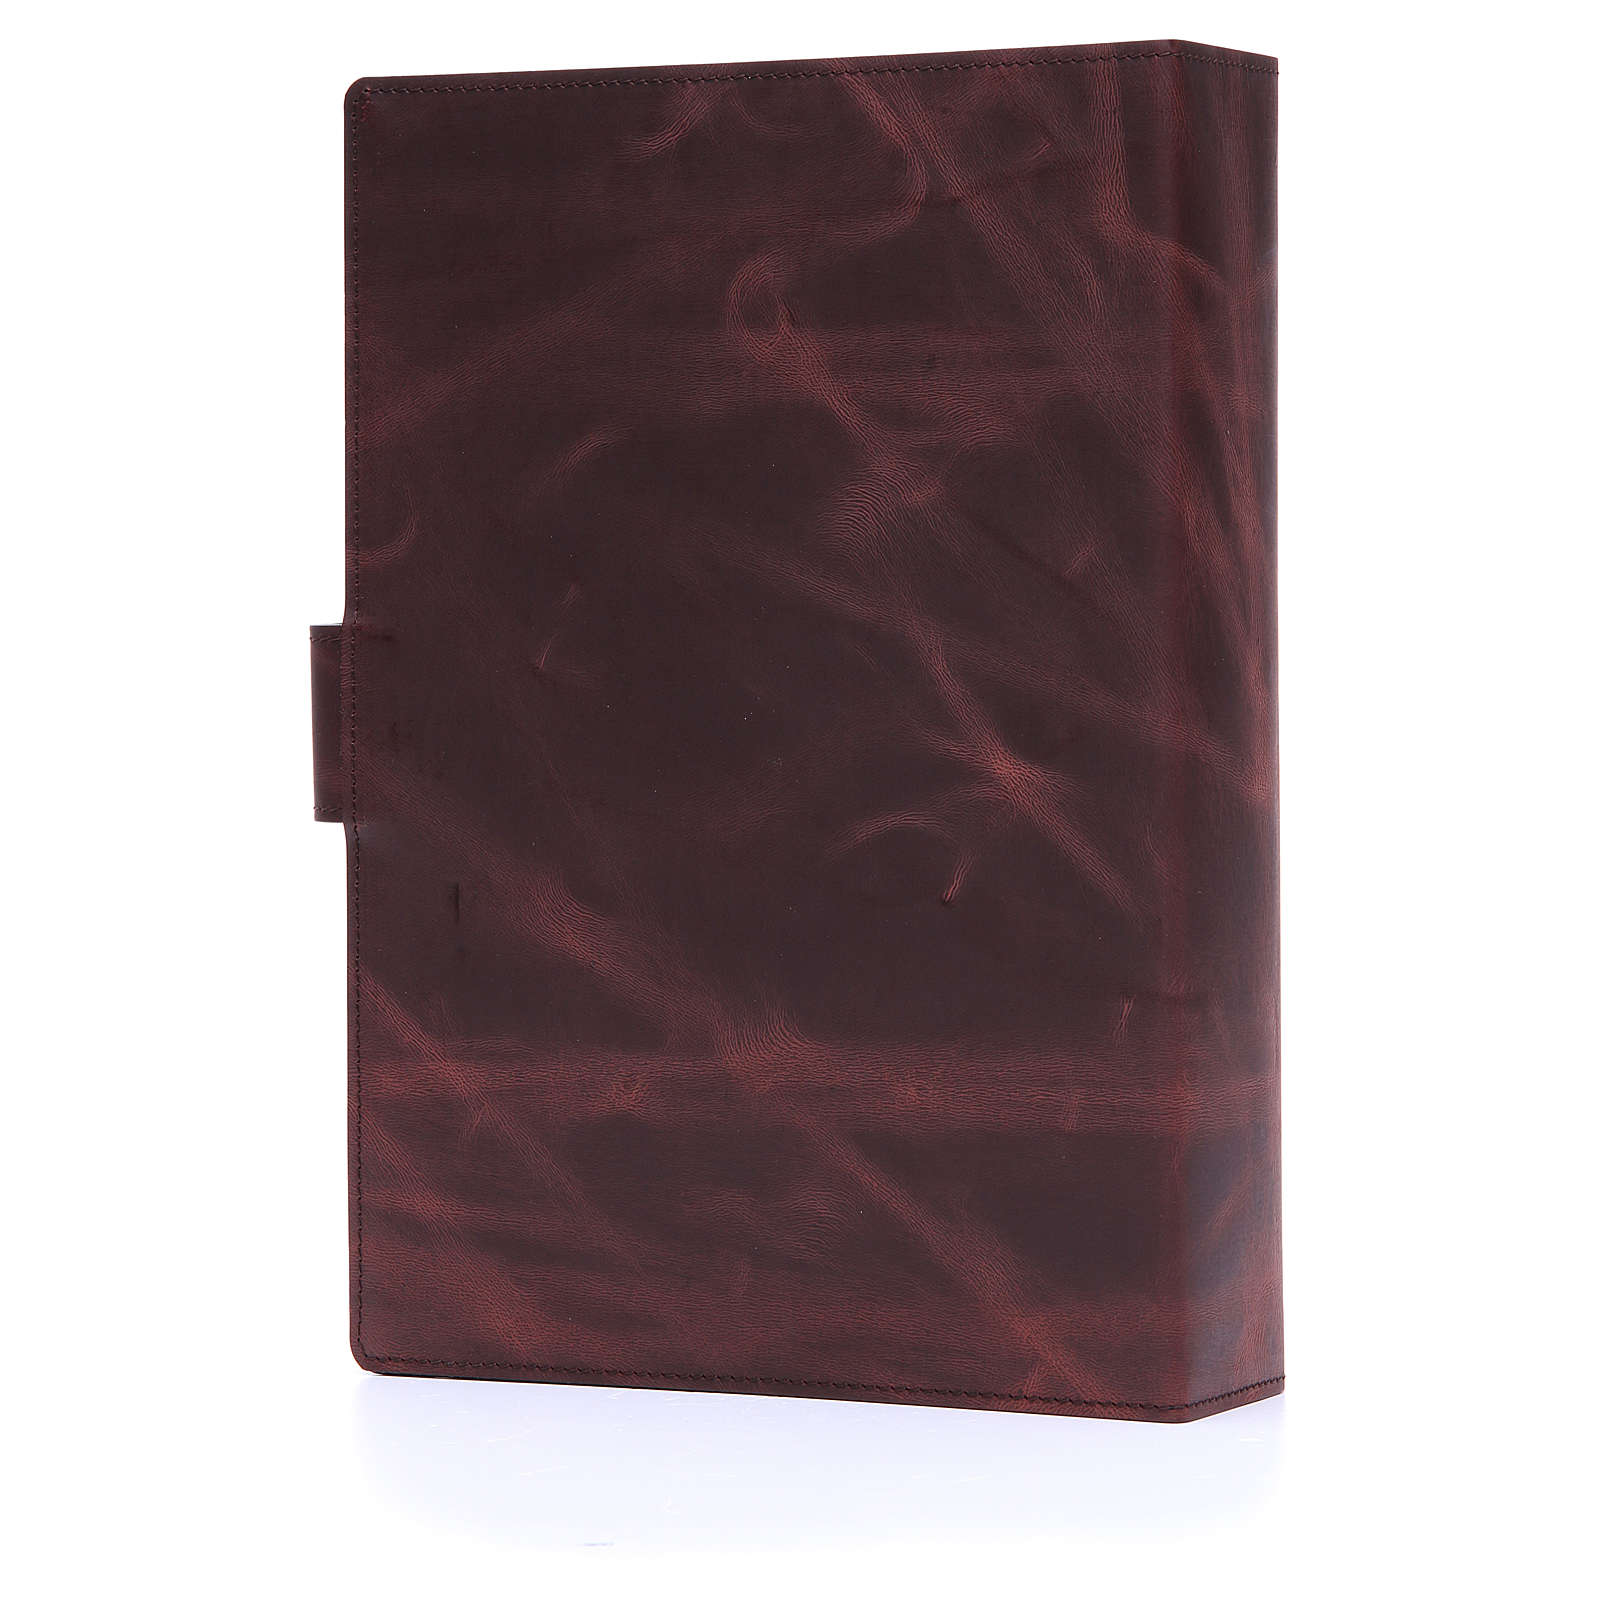 Lectionary cover, silver leather 4